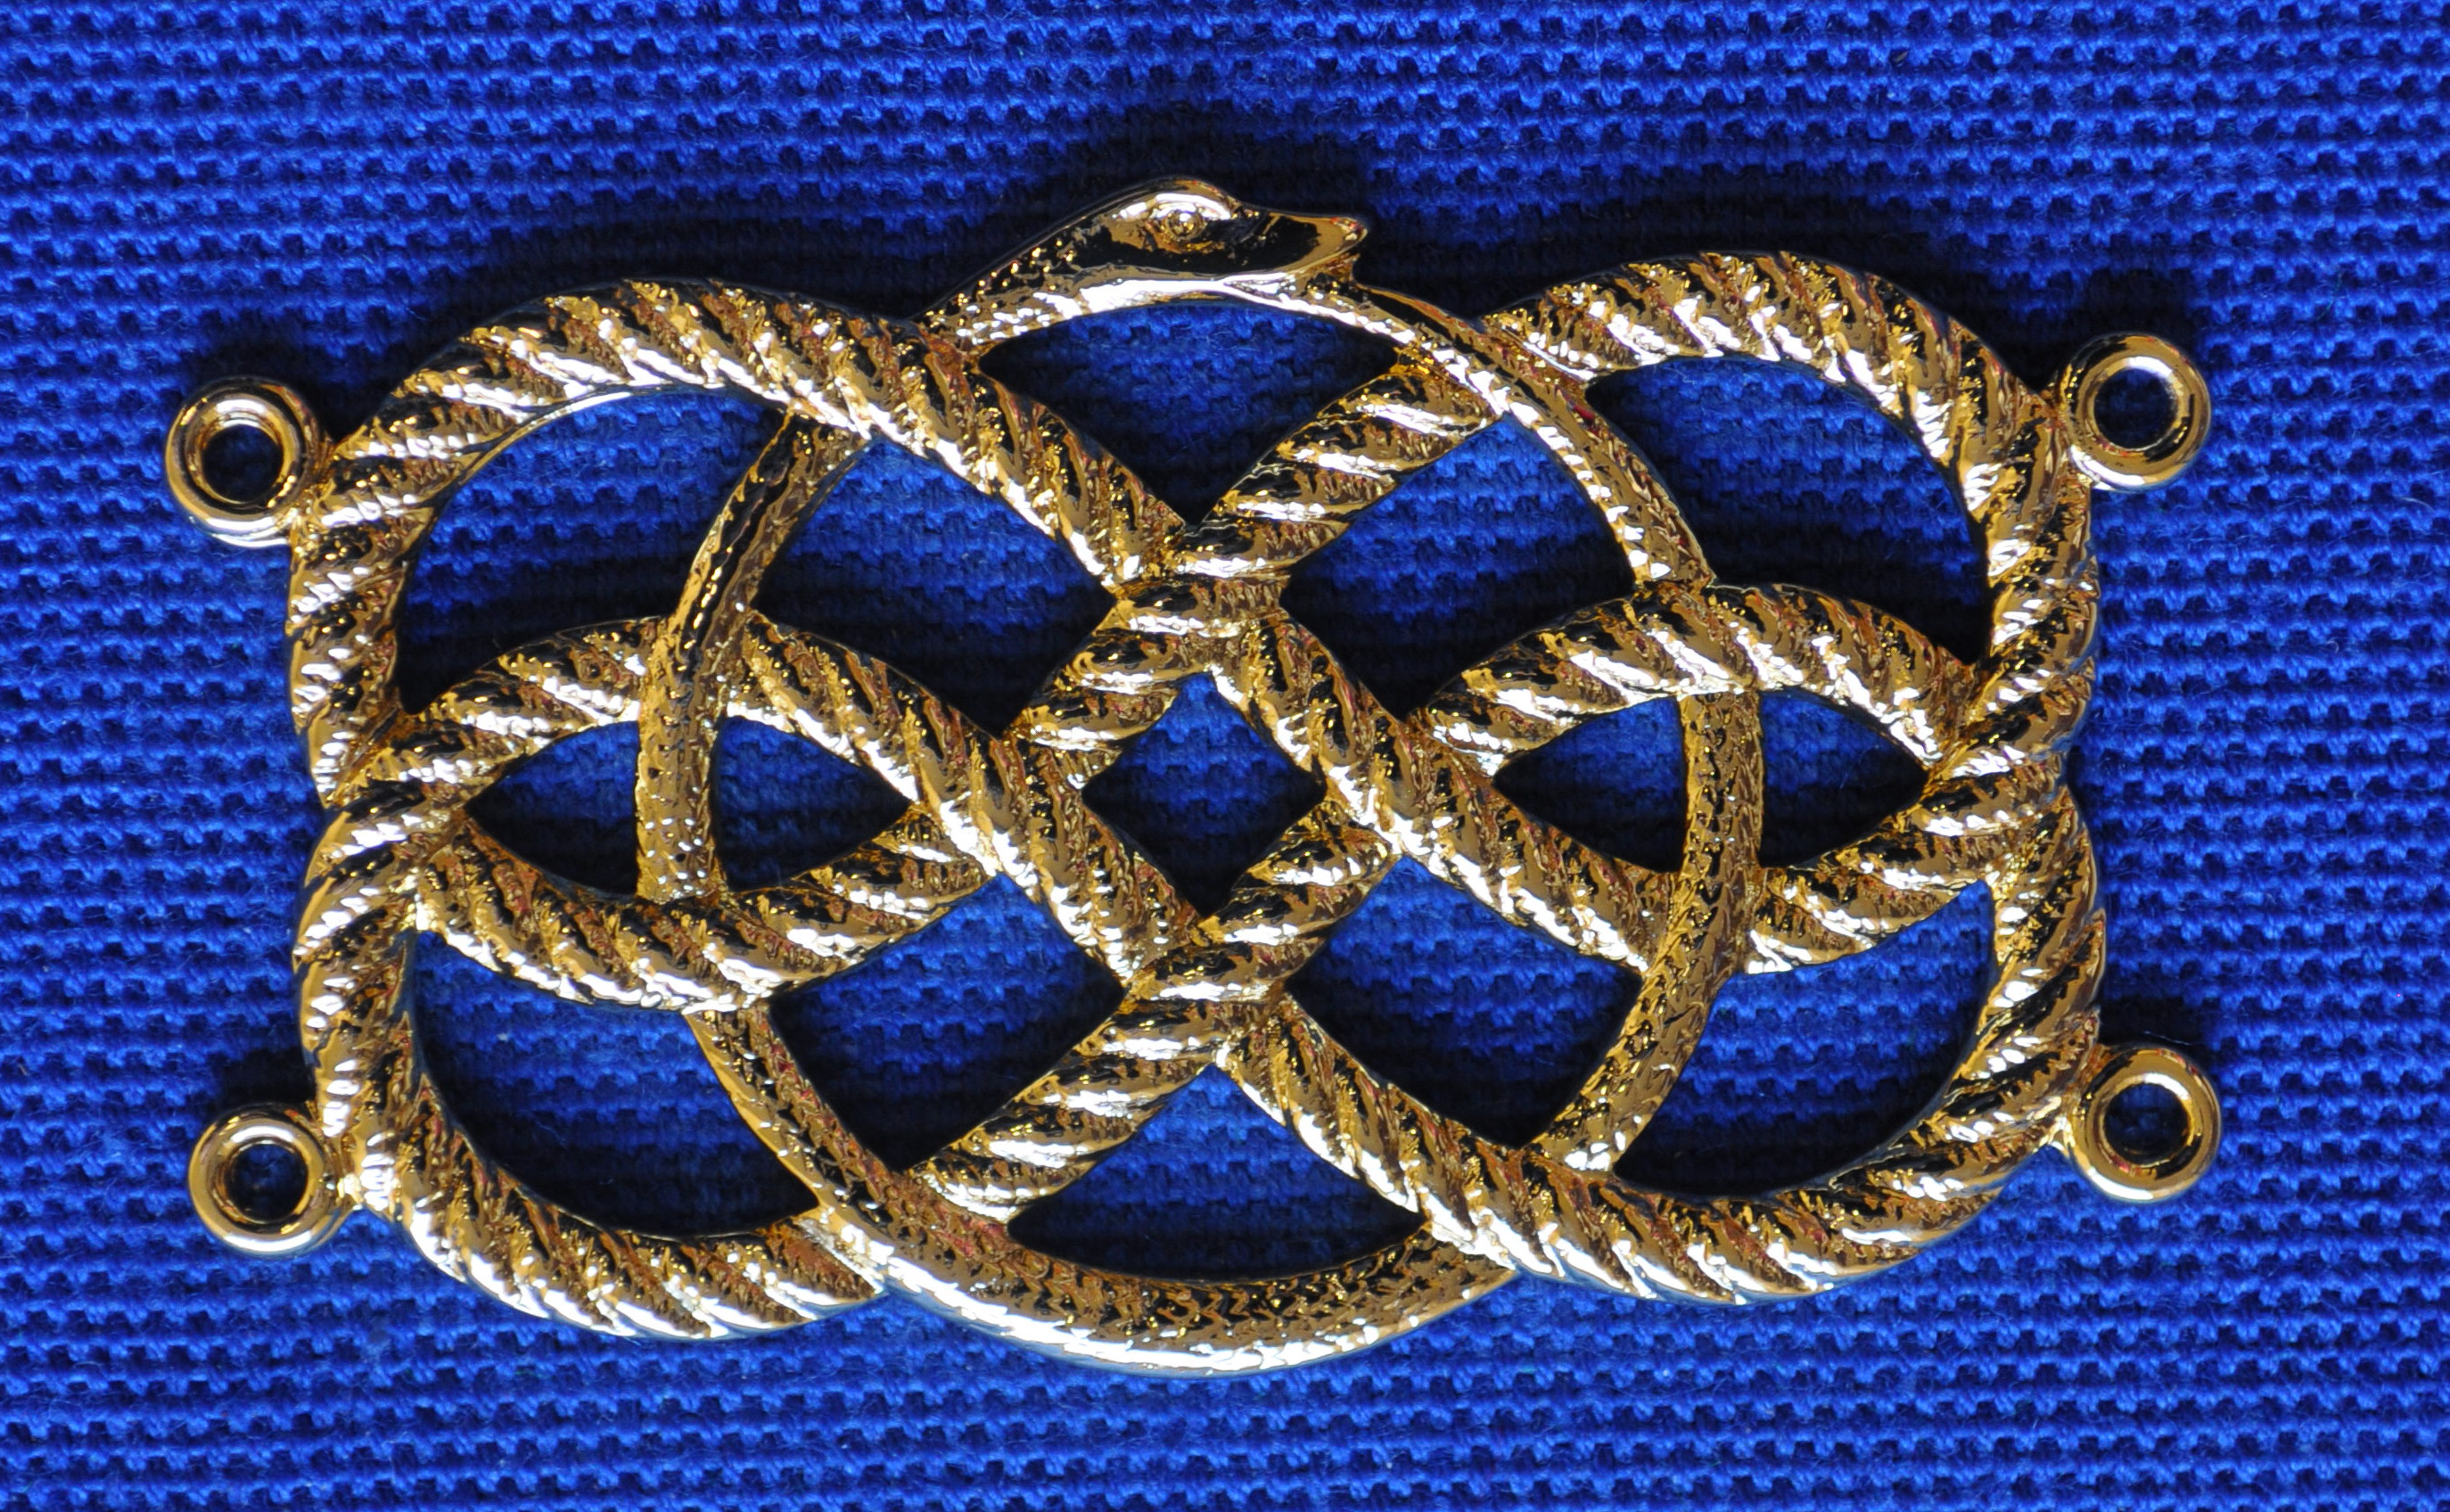 Craft Chain Metalwork - Snake & Ropes - Gilt